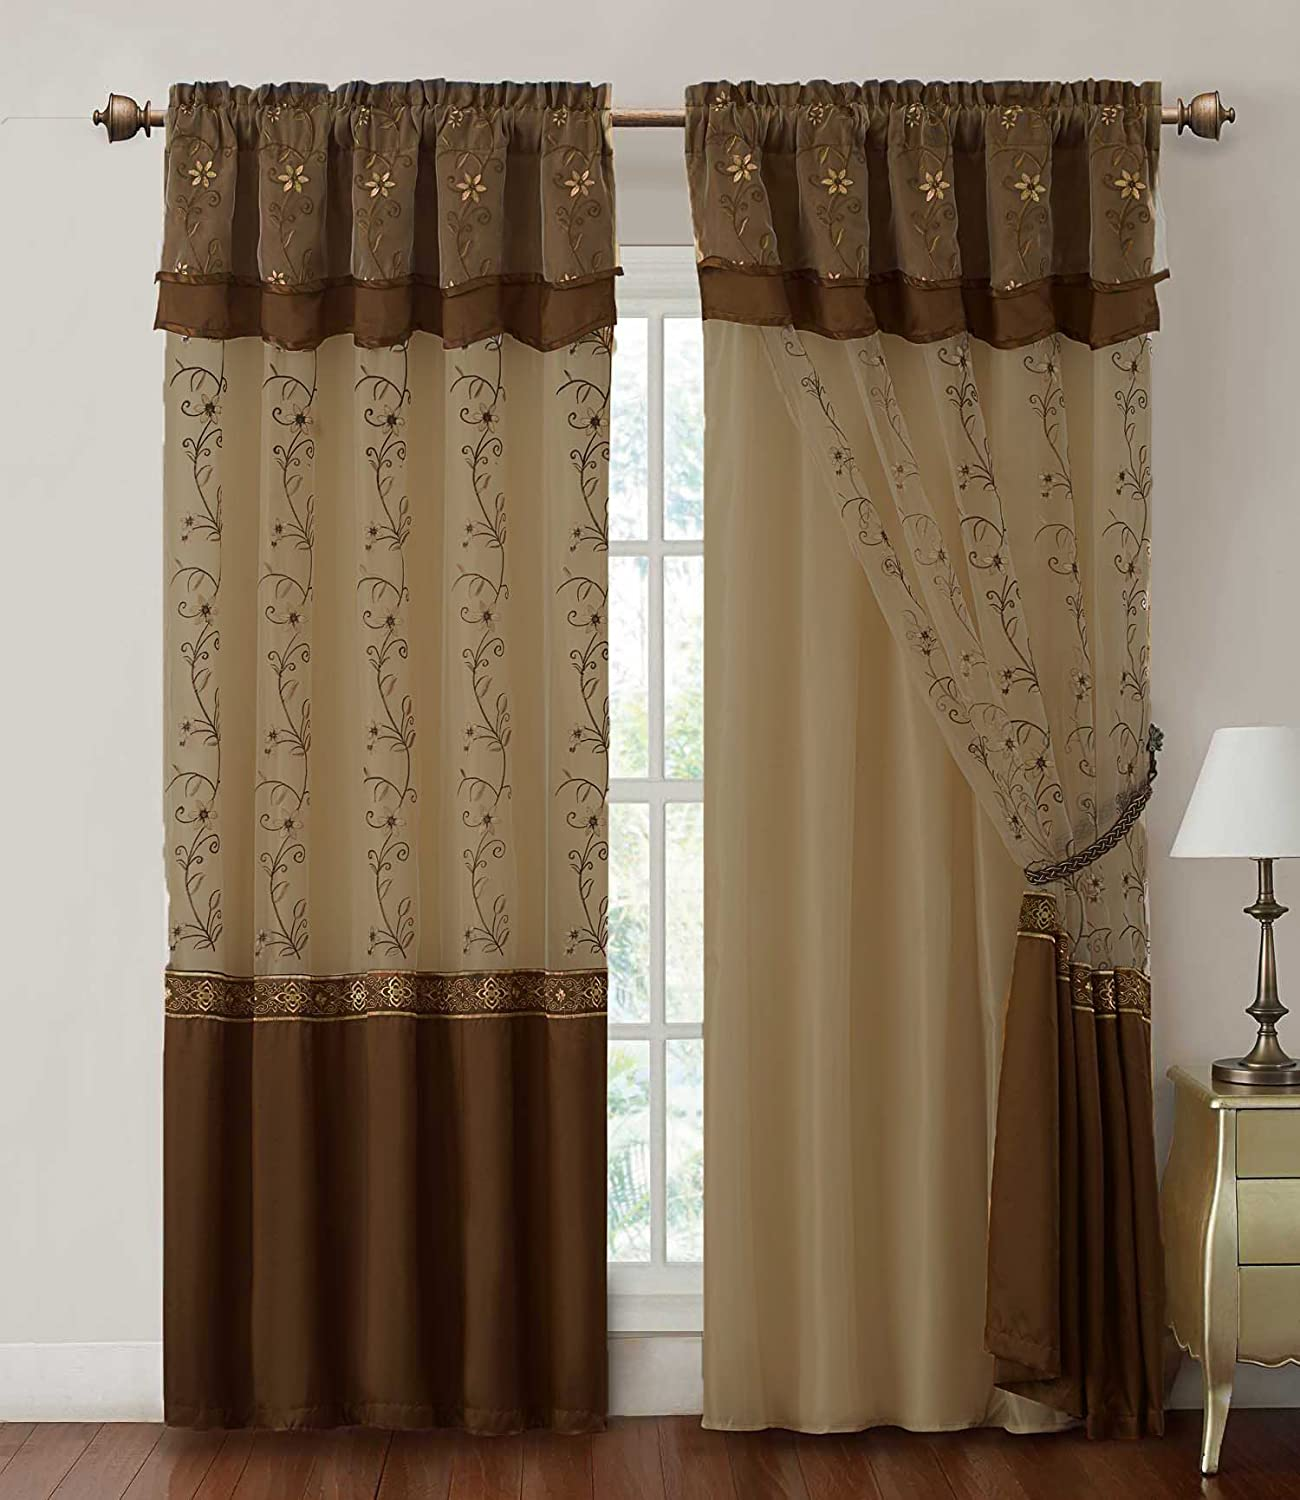 drapes living tree and leaf window room curtains sound romantic bedroom cotton merge polyester absorption p toile